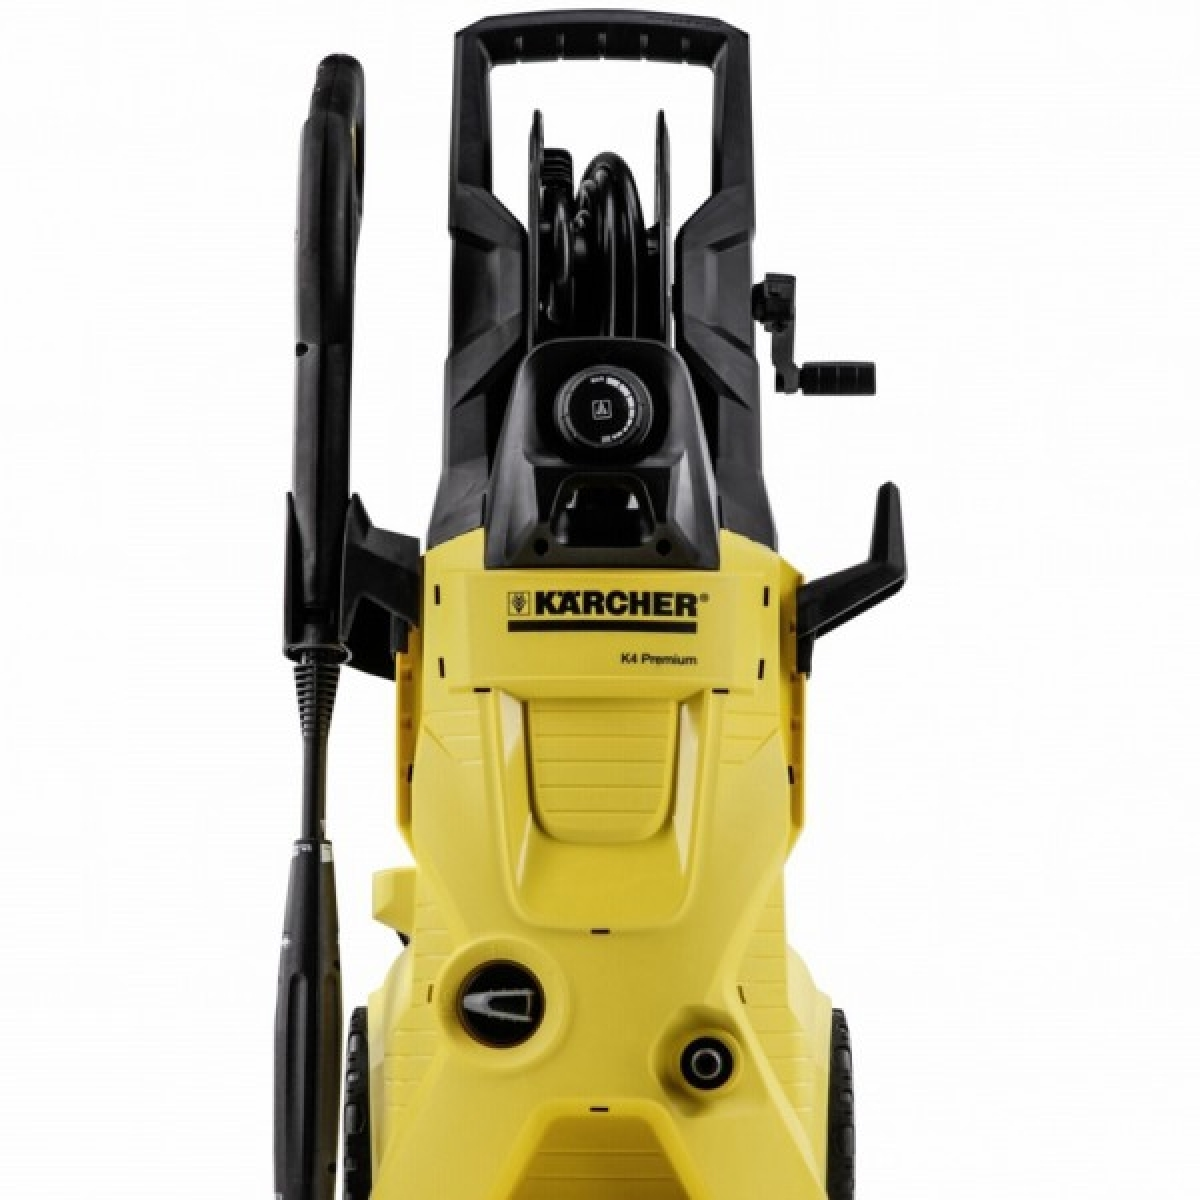 karcher k4 premium induction high pressure washer my. Black Bedroom Furniture Sets. Home Design Ideas